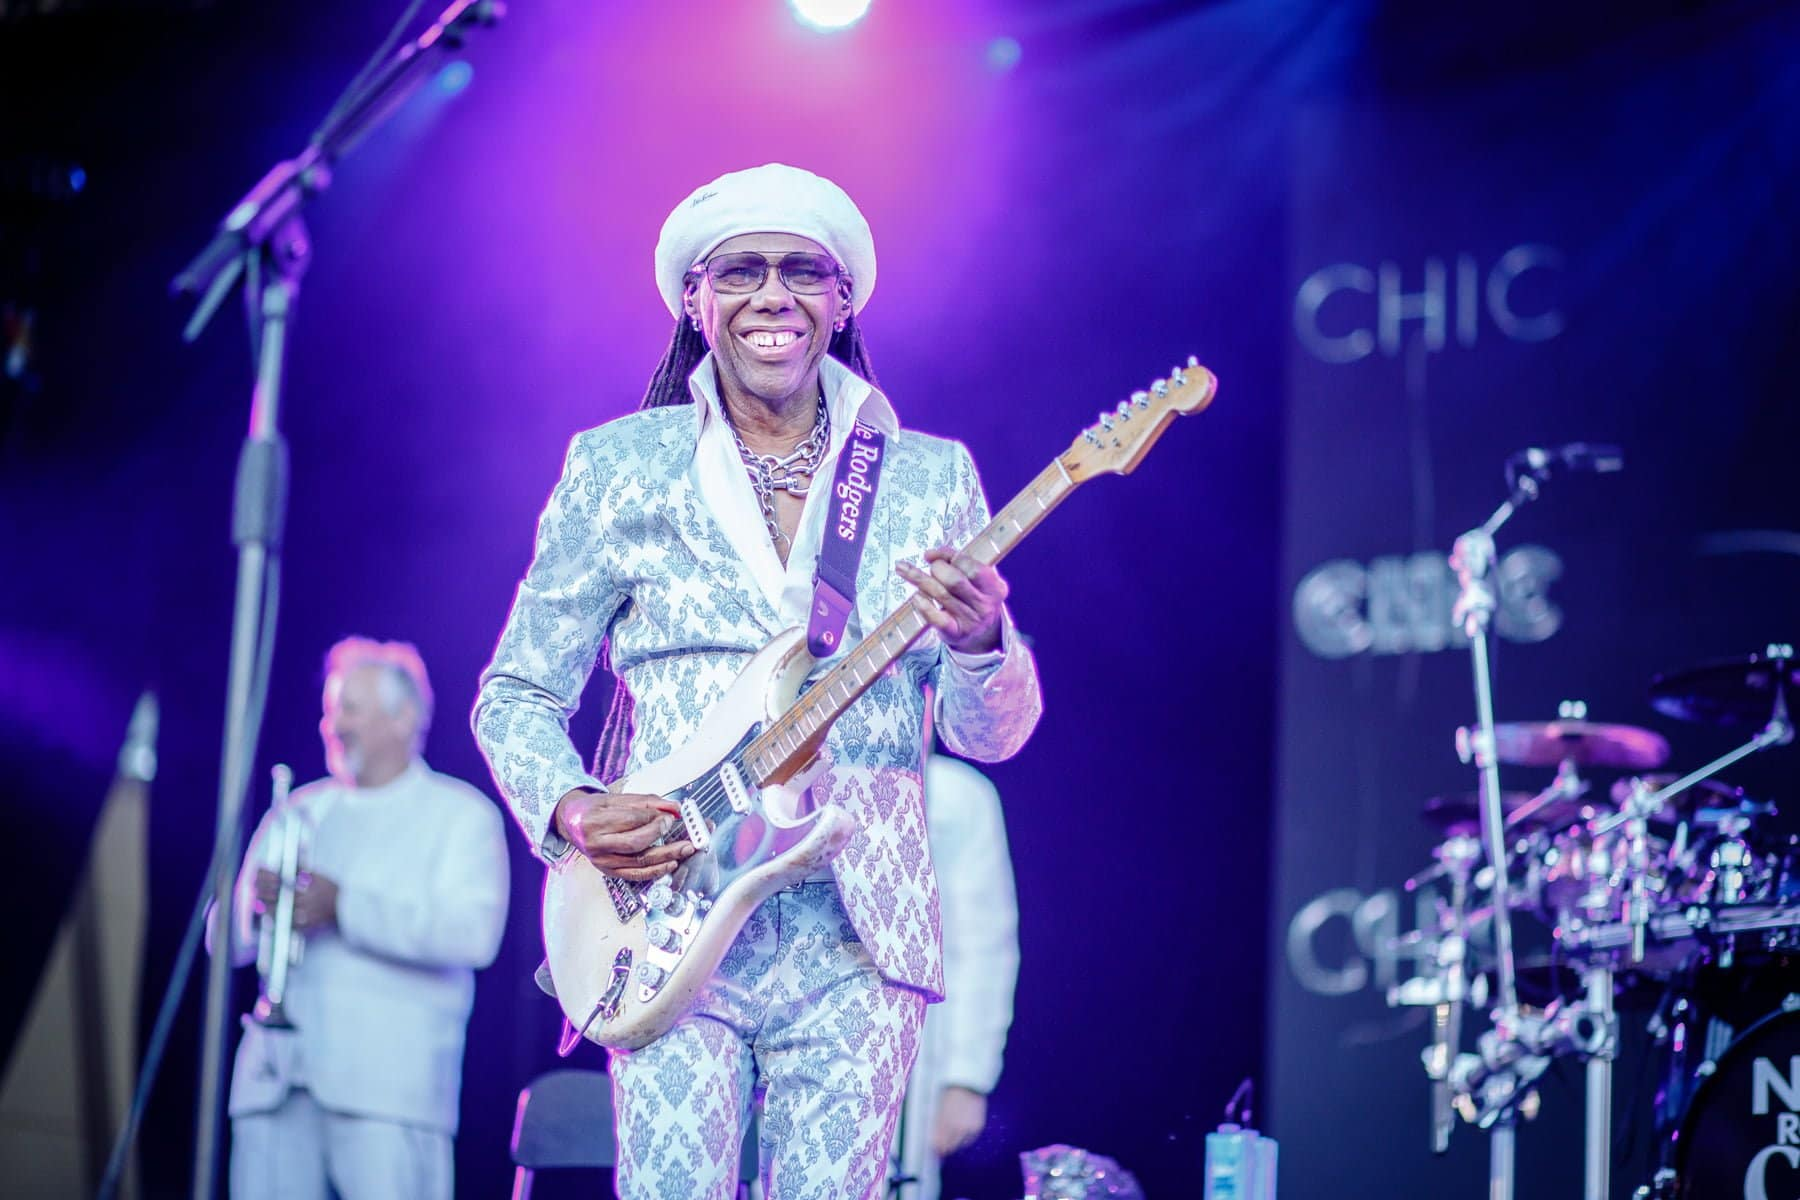 Nile Rodgers & CHIC Eden Sessions